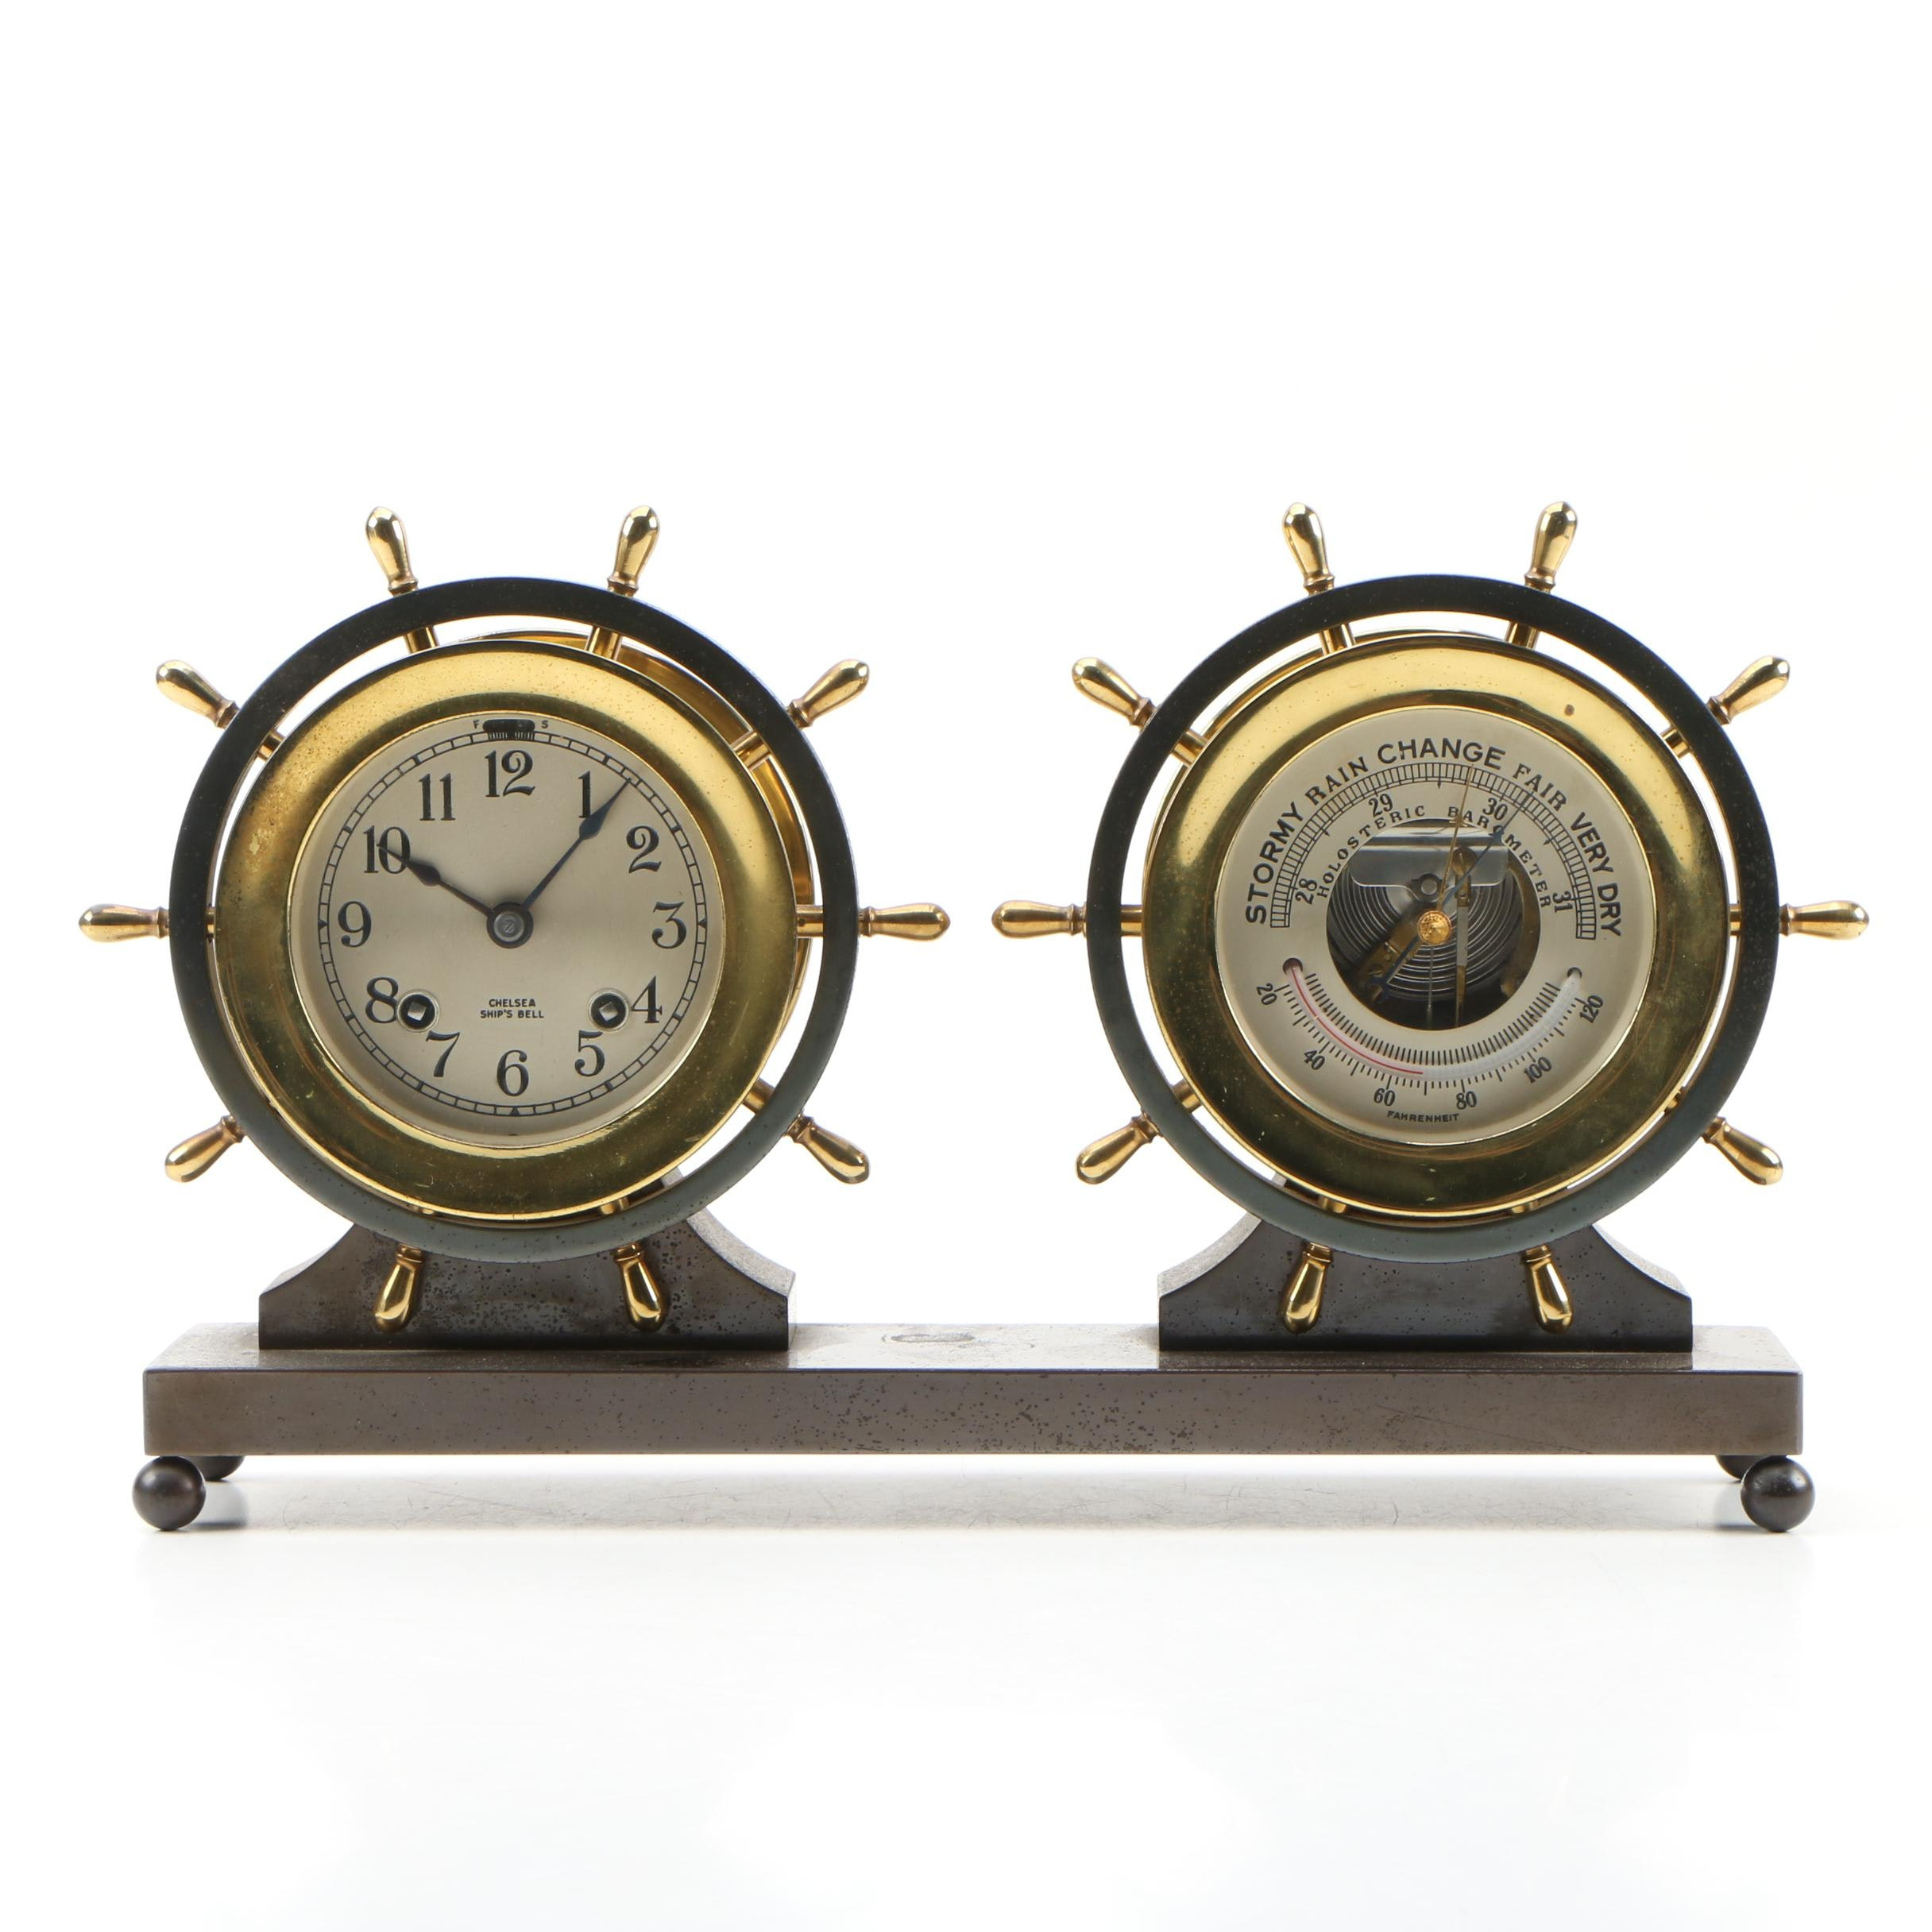 Chelsea Clock Co. Ship's Bell Clock and Weather Station